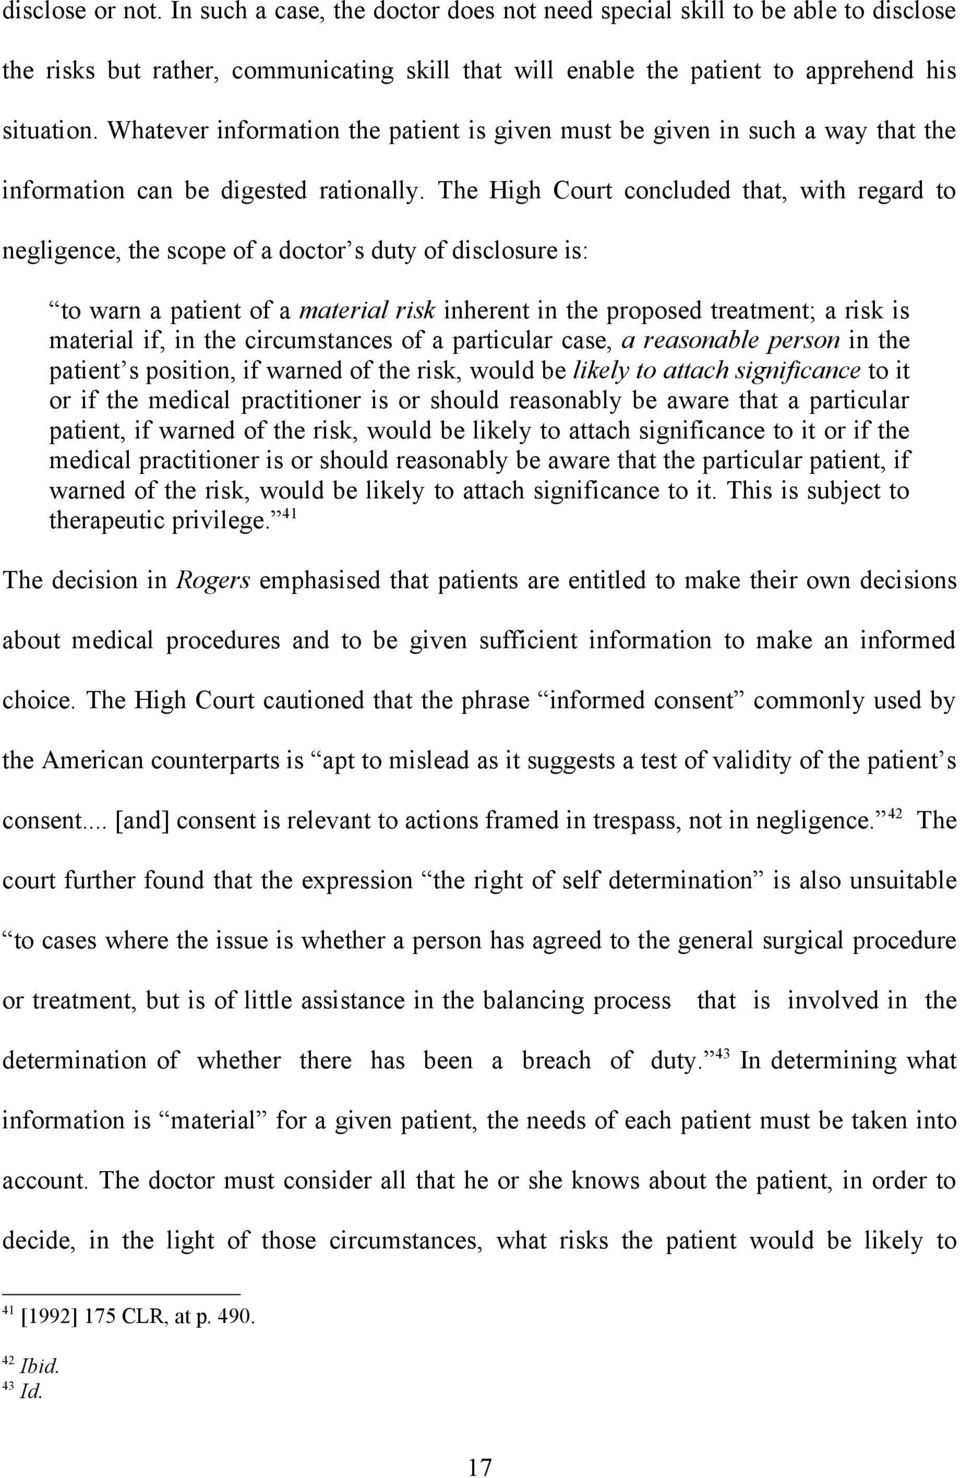 The High Court concluded that, with regard to negligence, the scope of a doctor s duty of disclosure is: to warn a patient of a material risk inherent in the proposed treatment; a risk is material